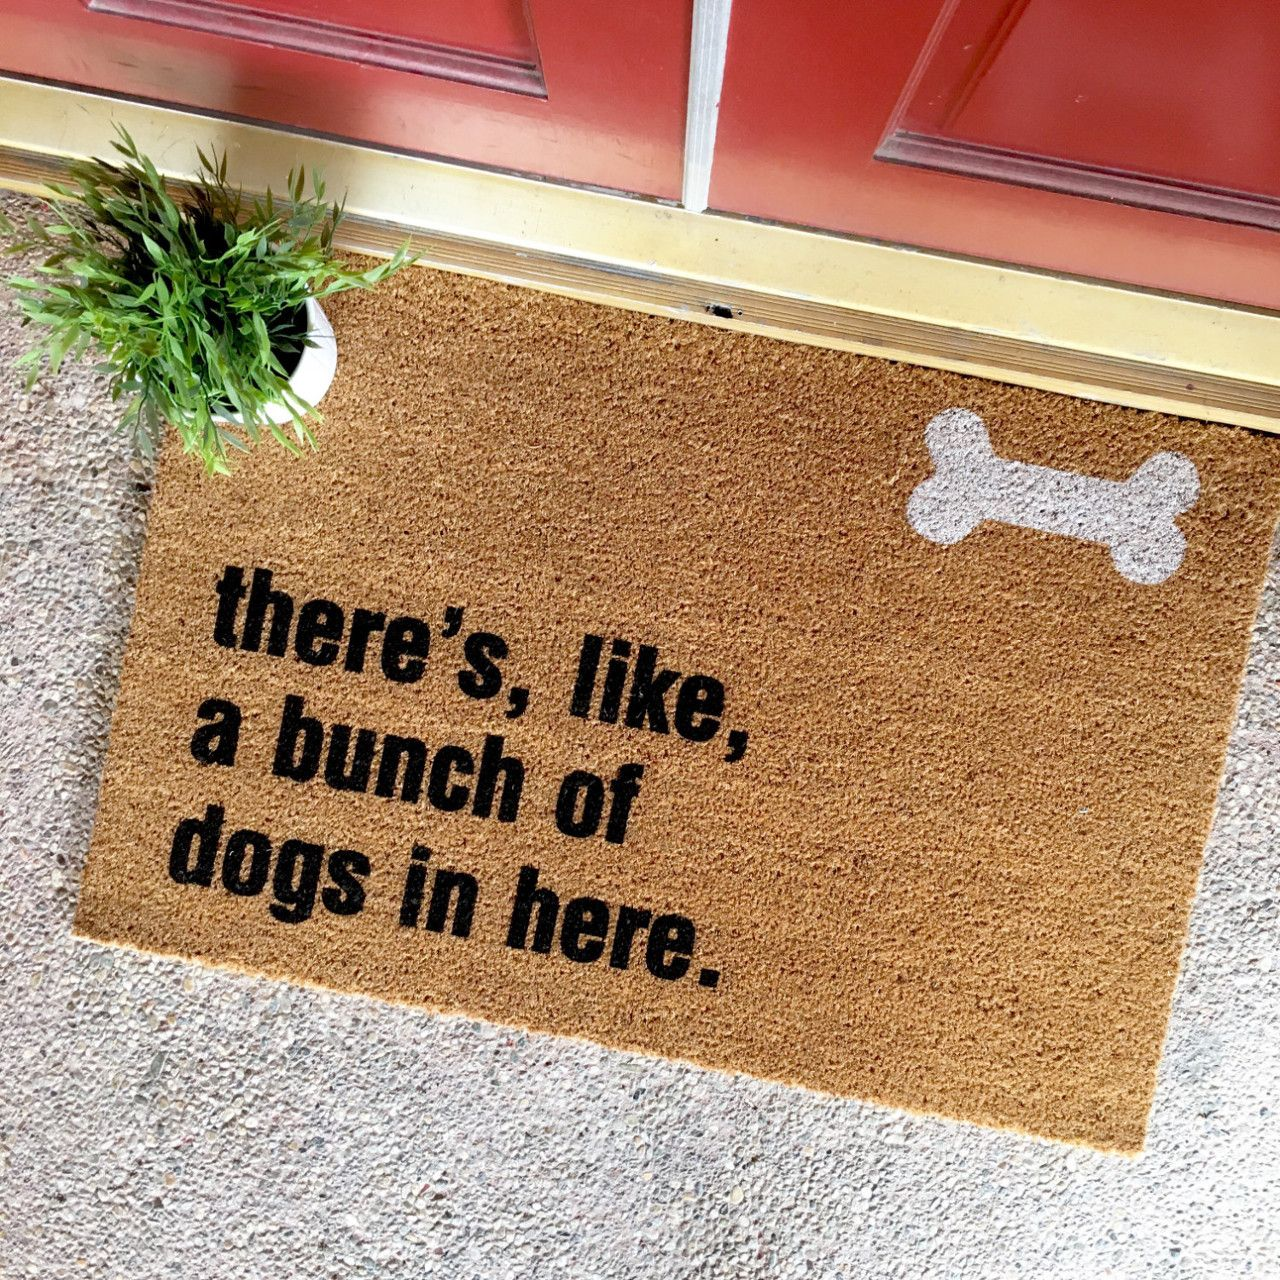 Charming Multi Dog Households Definitely Need This Doormat From The Cheeky Doormat.